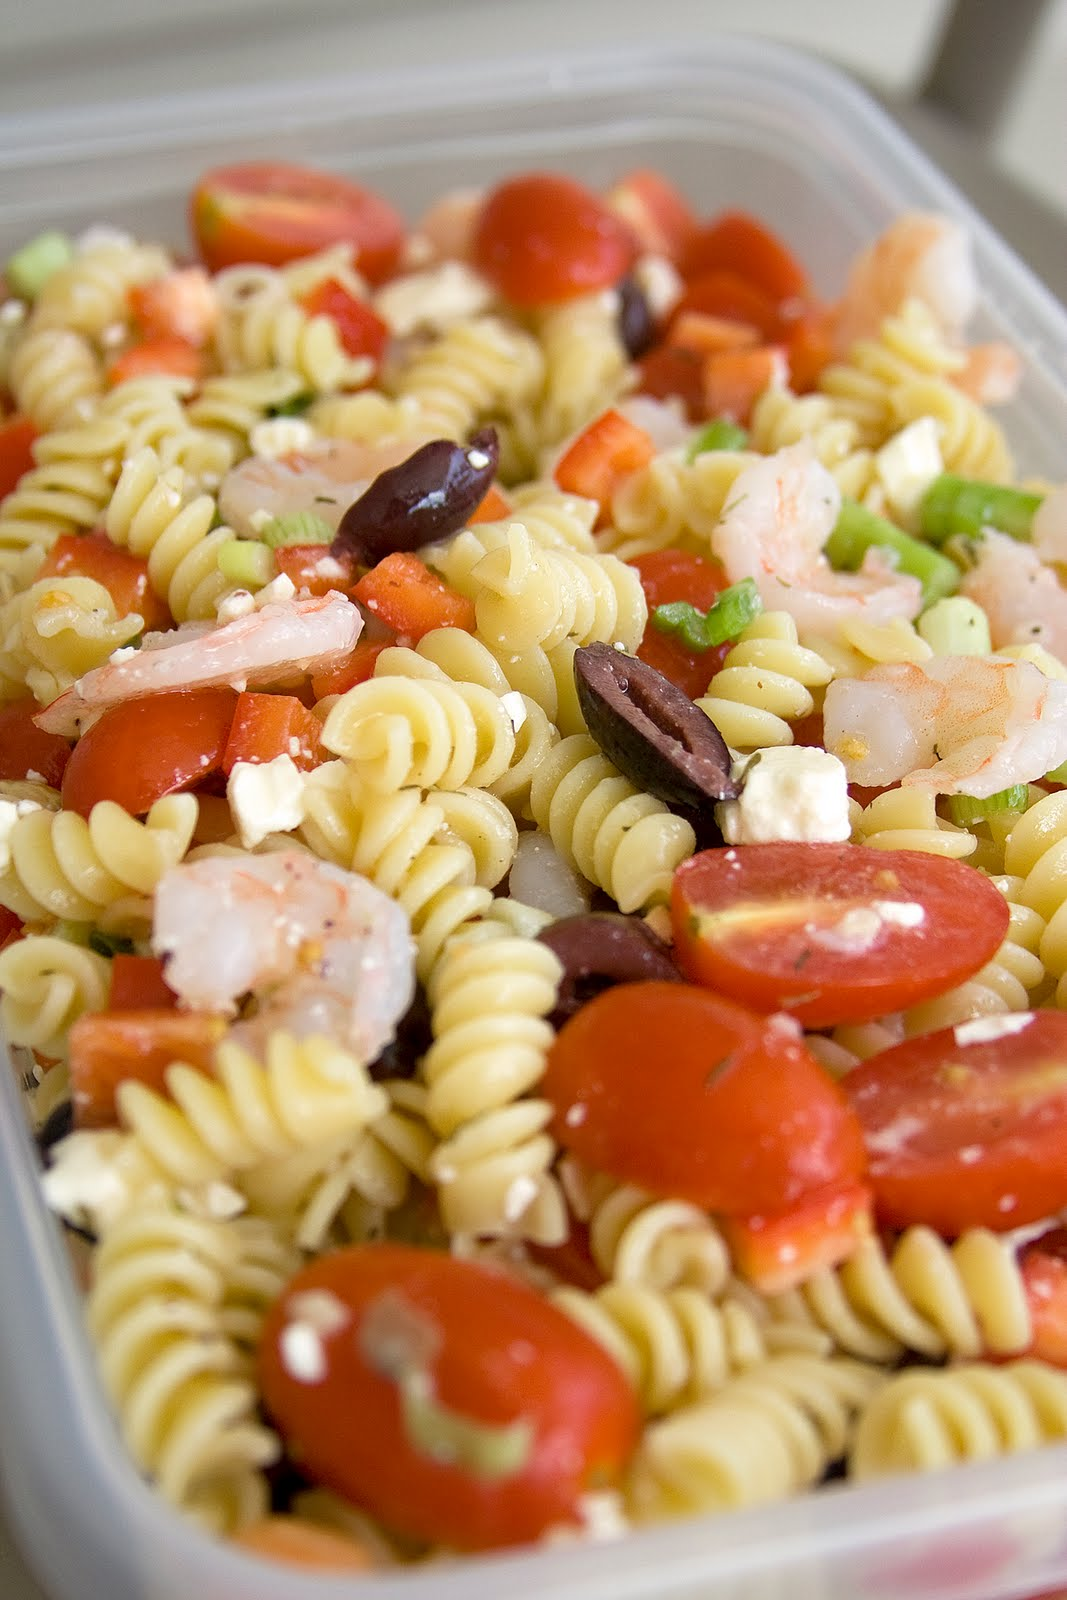 Just a bite: Greek Pasta Salad with Shrimp and Olives